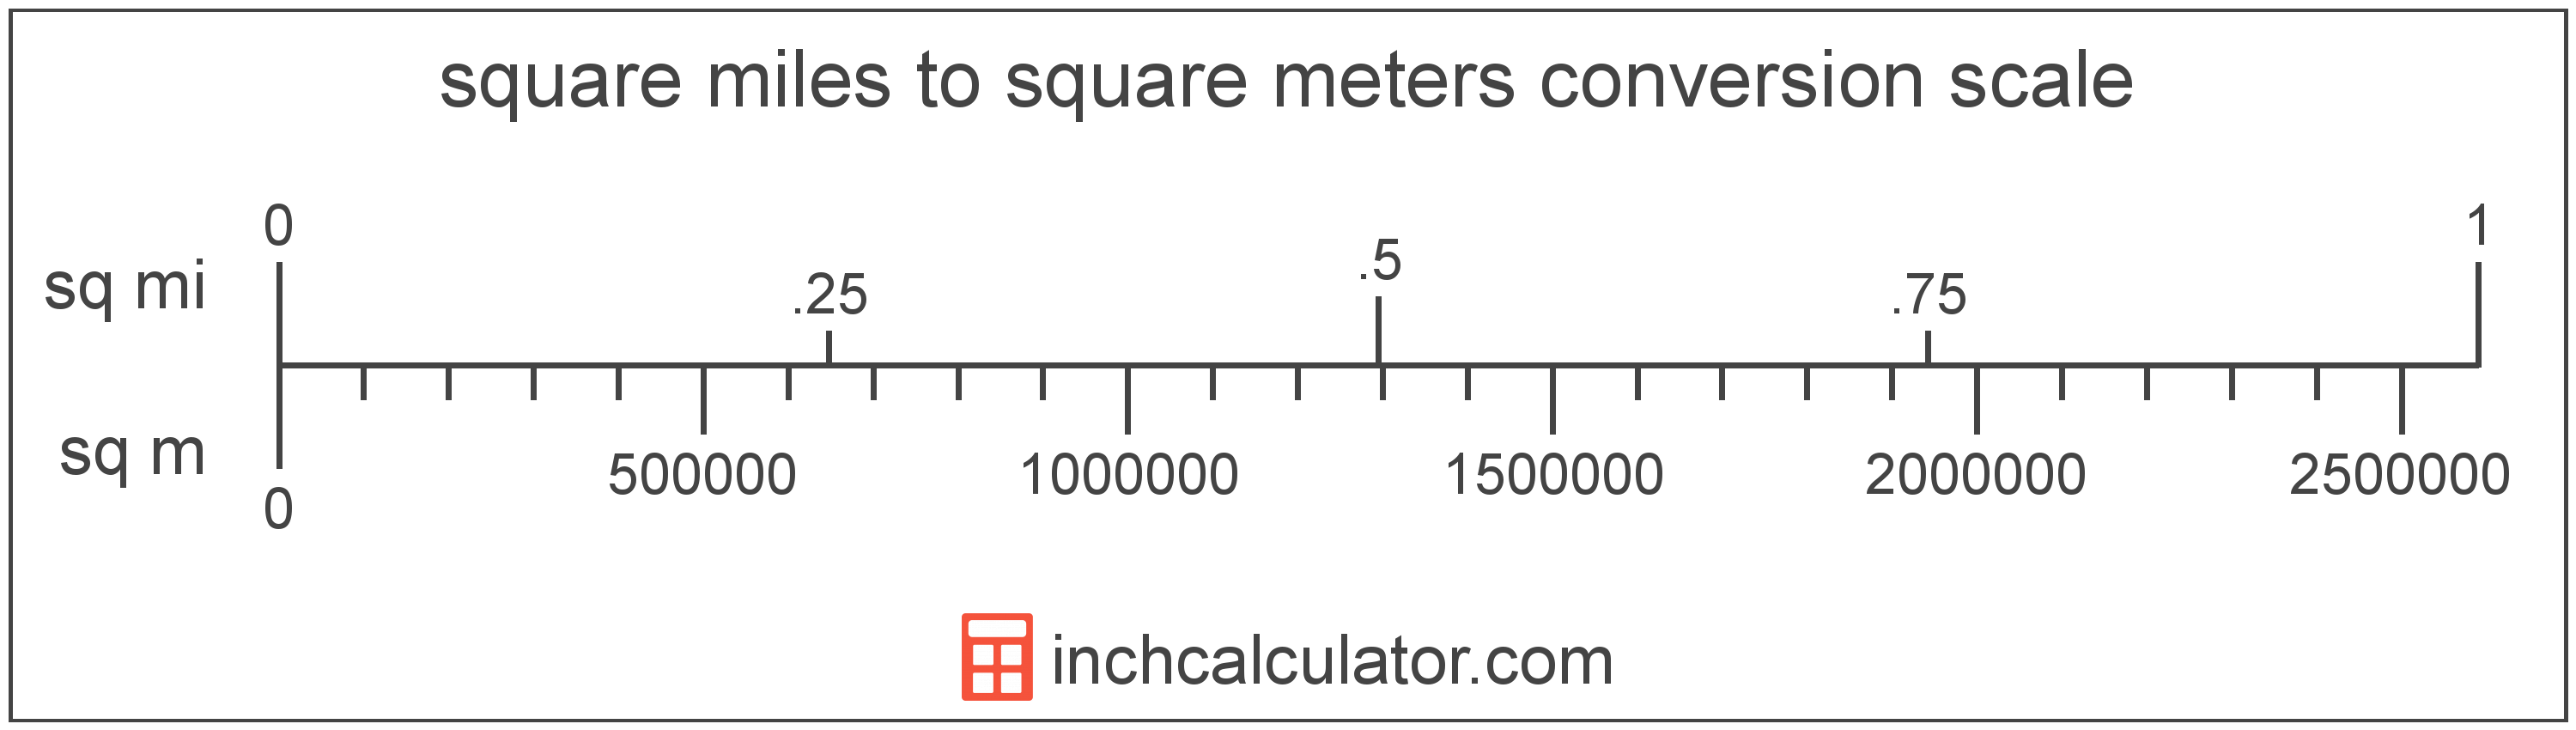 conversion scale showing square miles and equivalent square meters area values